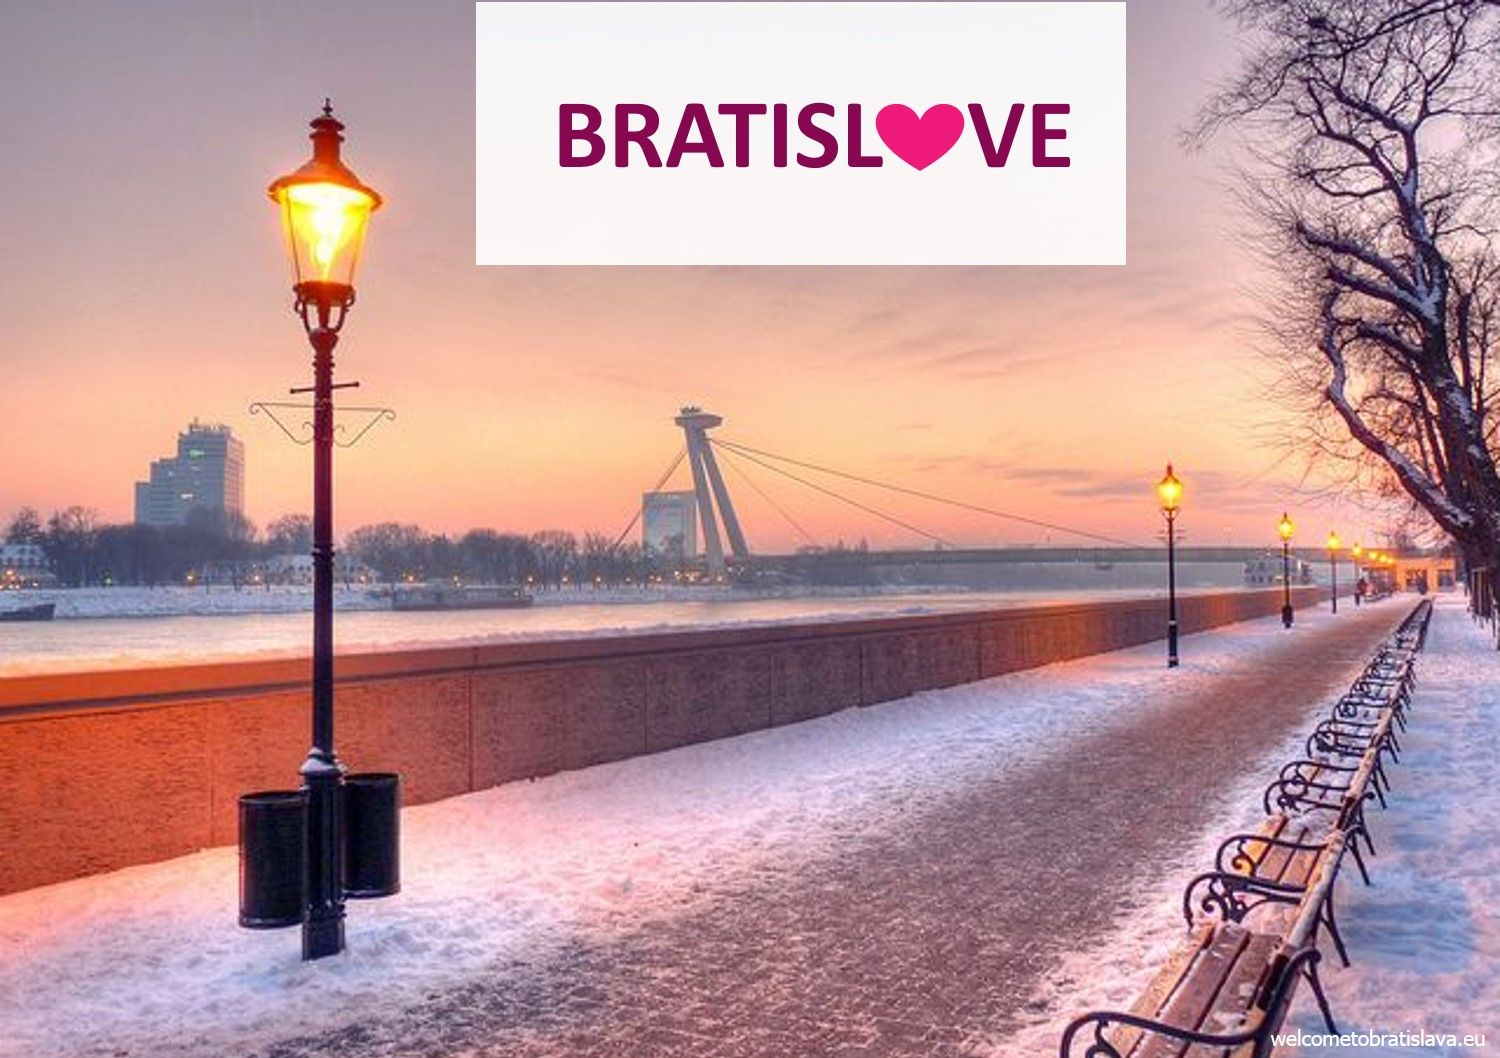 BratisLOVE - collection of the most beautiful Pinterest pictures